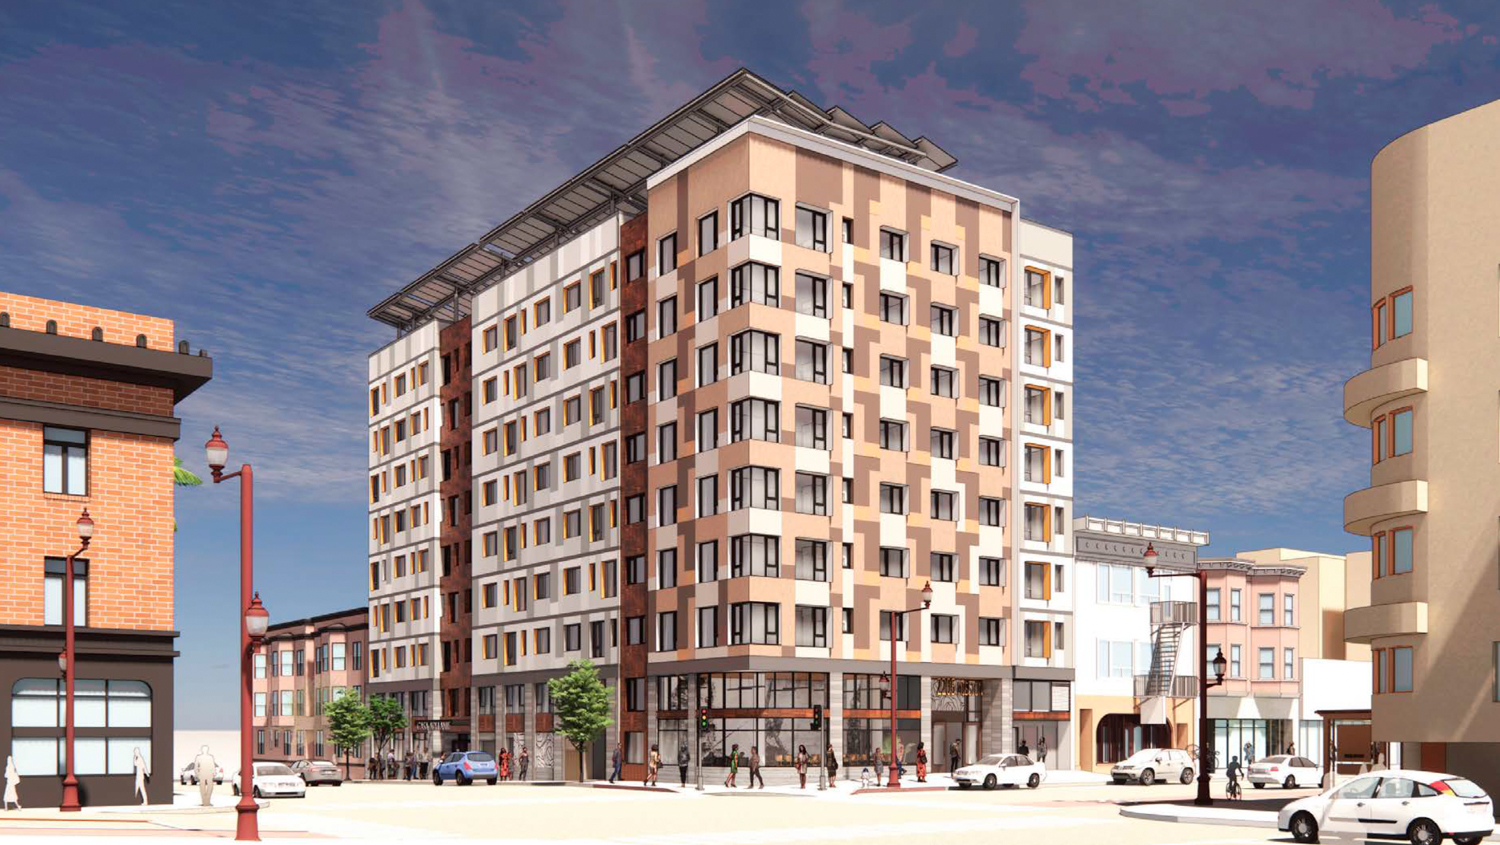 2205 Mission Street, rendering by Gelfand Partners Architects